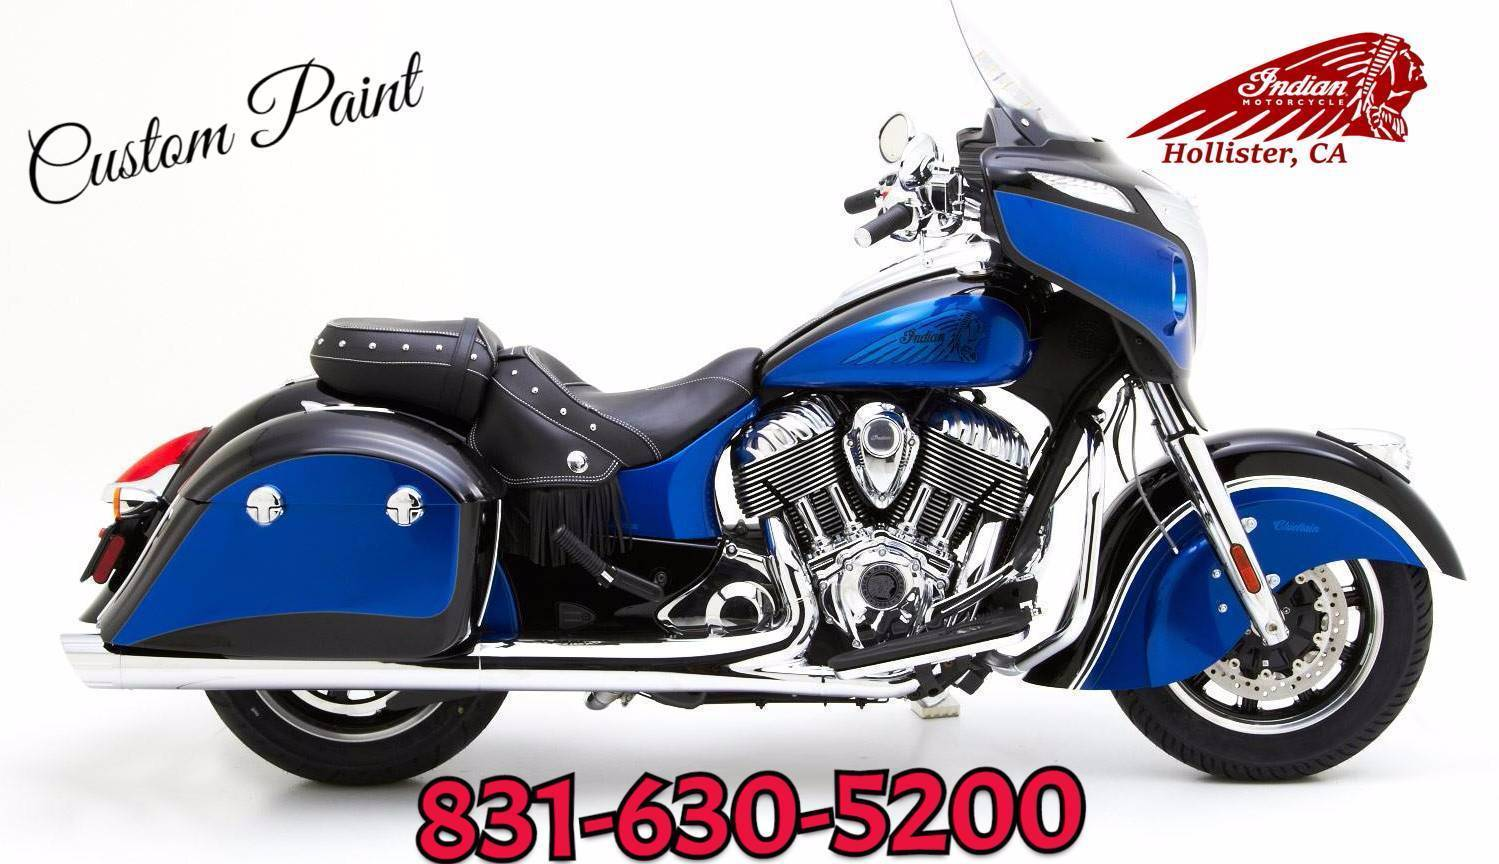 2019 Indian Chieftain® ABS in Hollister, California - Photo 2